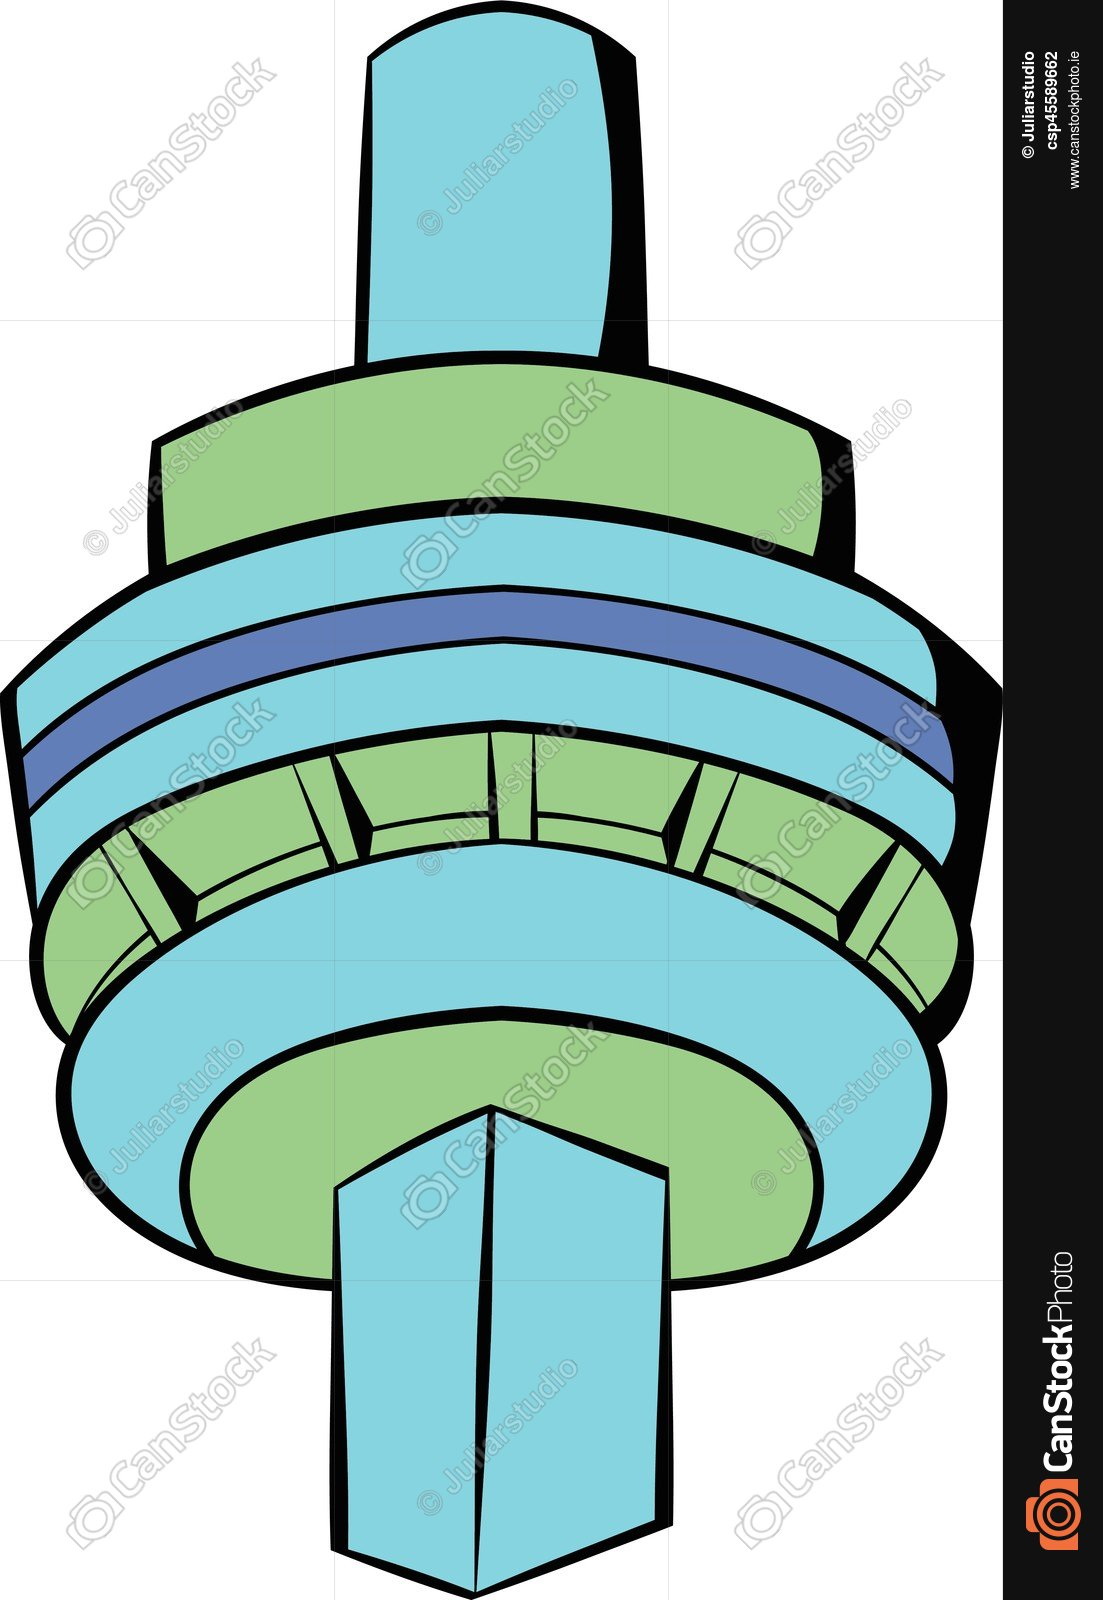 1103x1600 The Cn Tower In Toronto Icon Cartoon. The Cn Tower In Clip Art